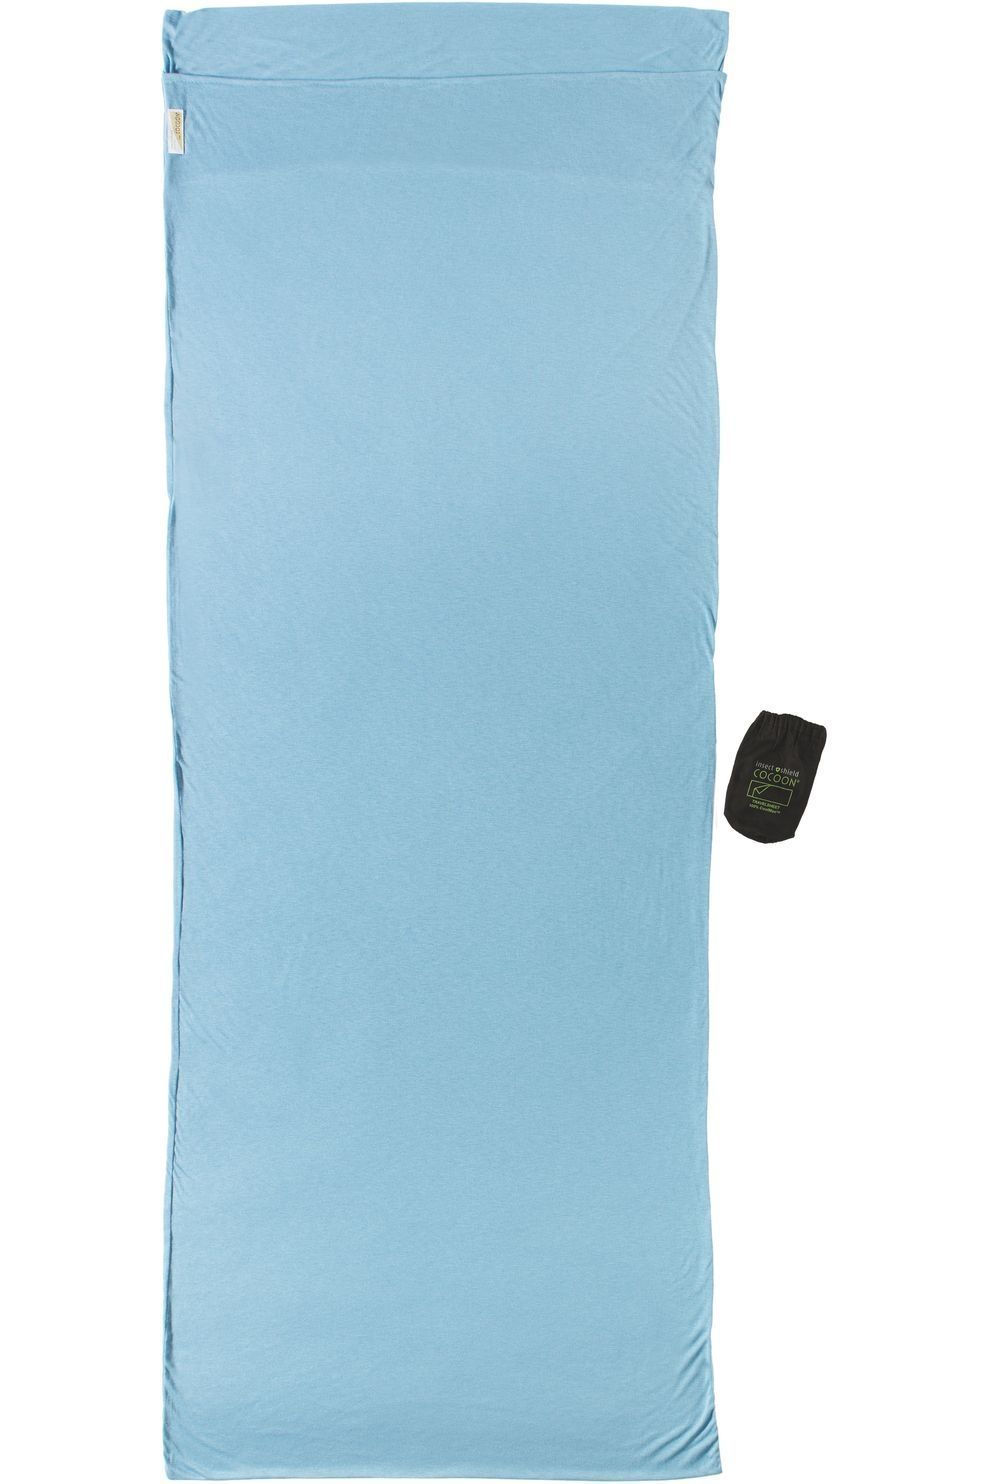 Cocoon Lakenzak Insect Shield Coolmax - Blauw